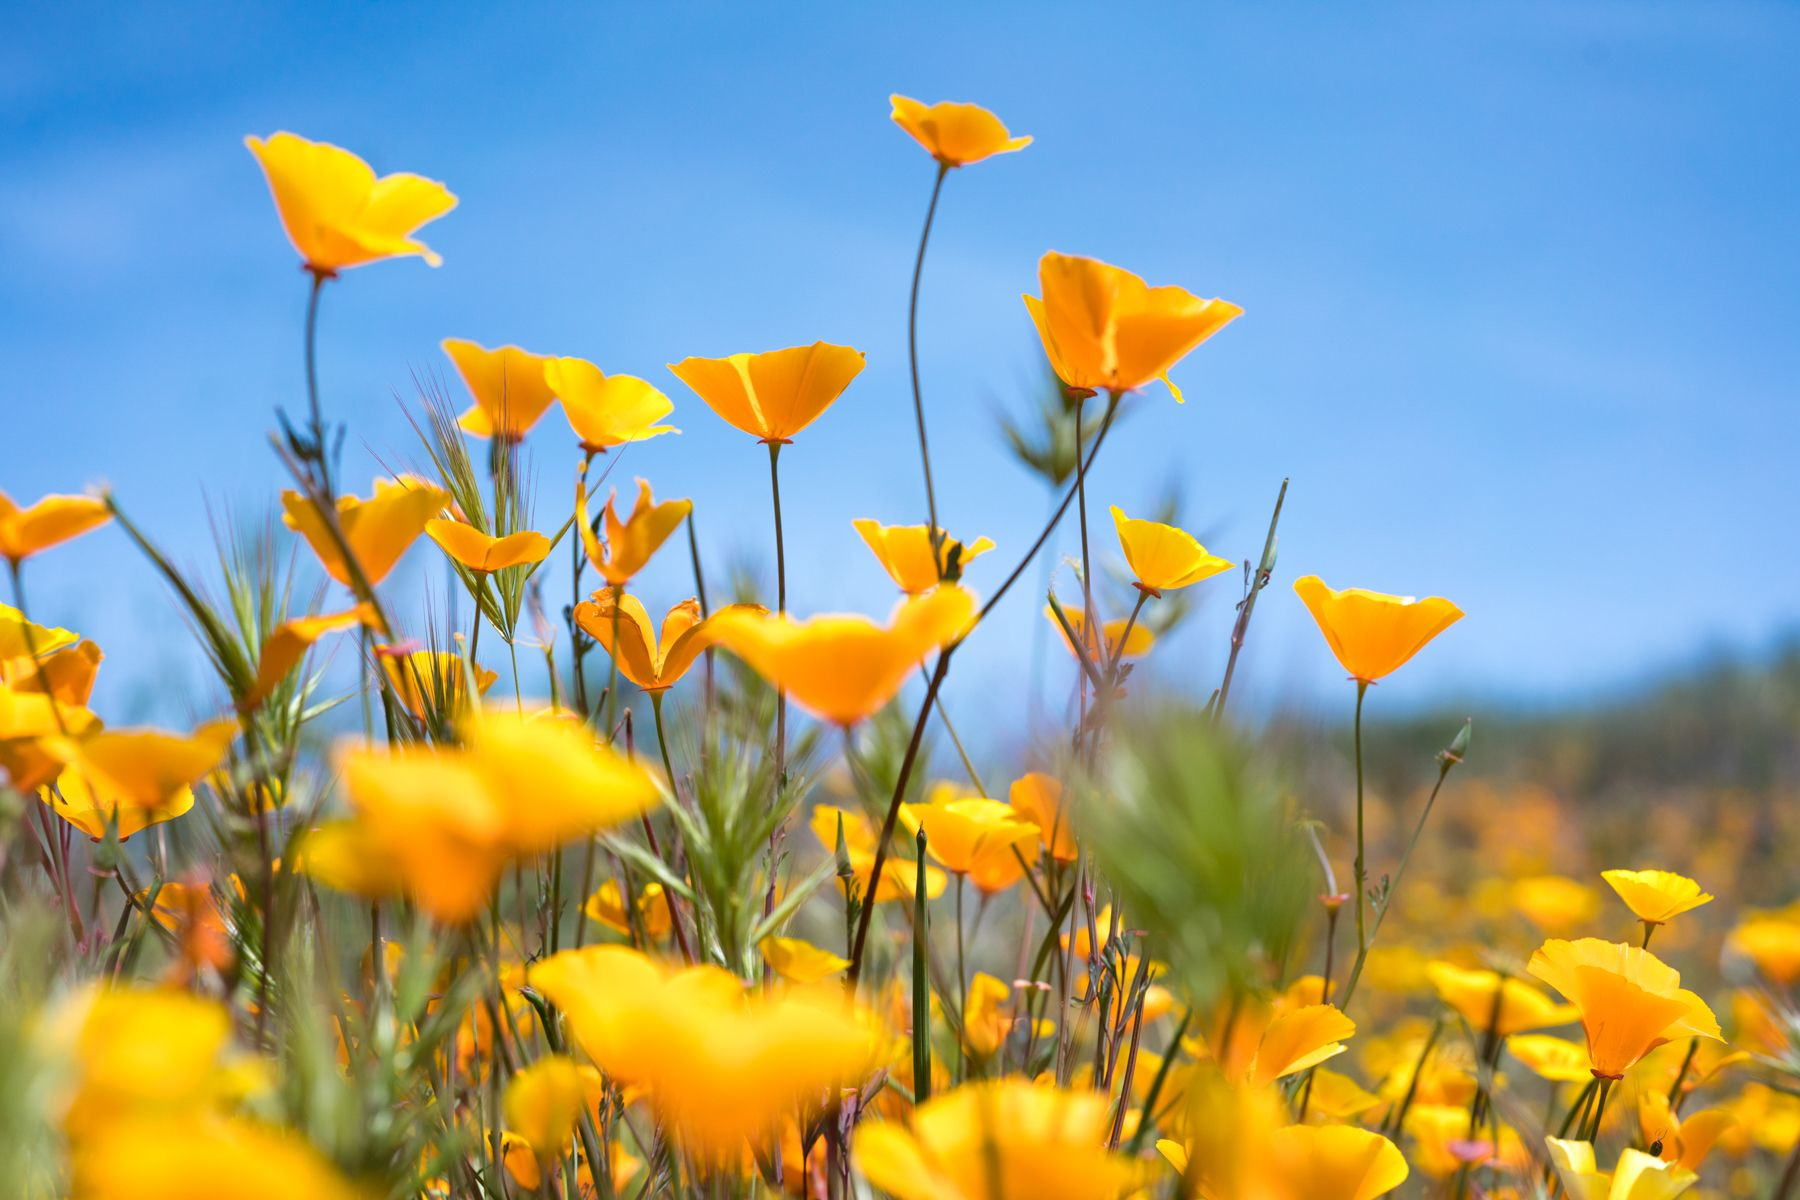 California poppies on sunny day